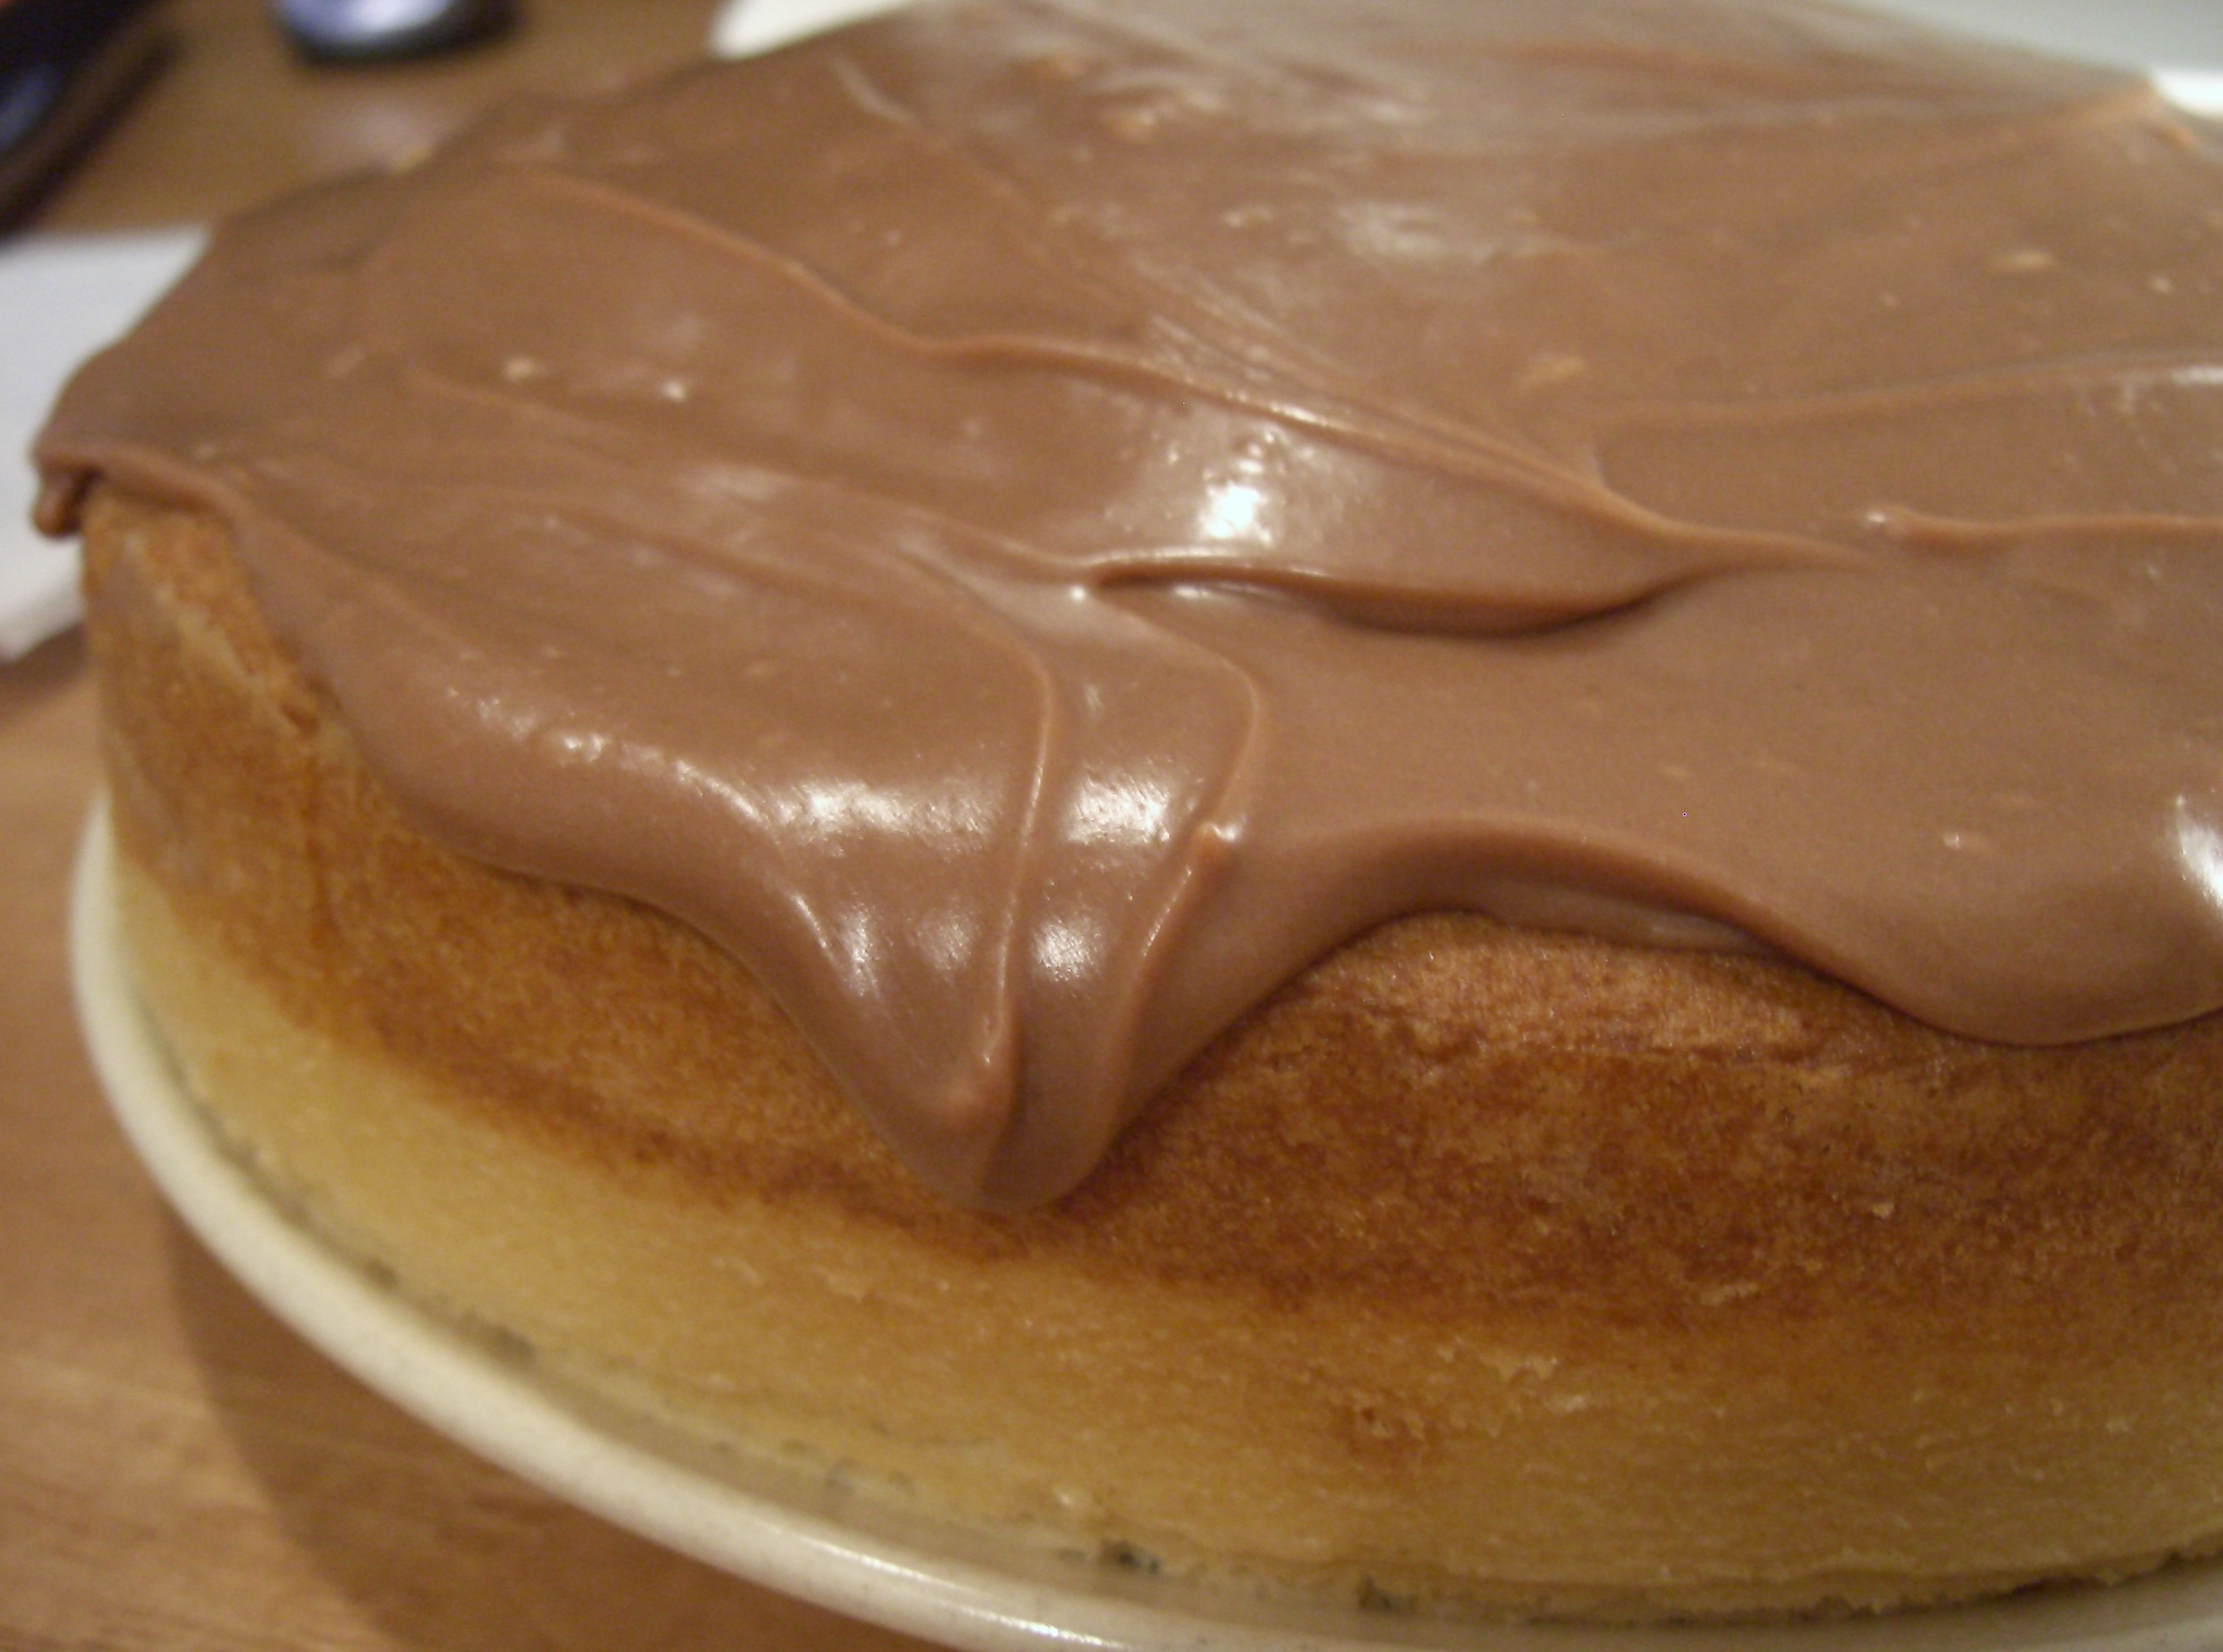 File:Chocolate Sour-Cream Icing on cake.JPG - Wikimedia Commons